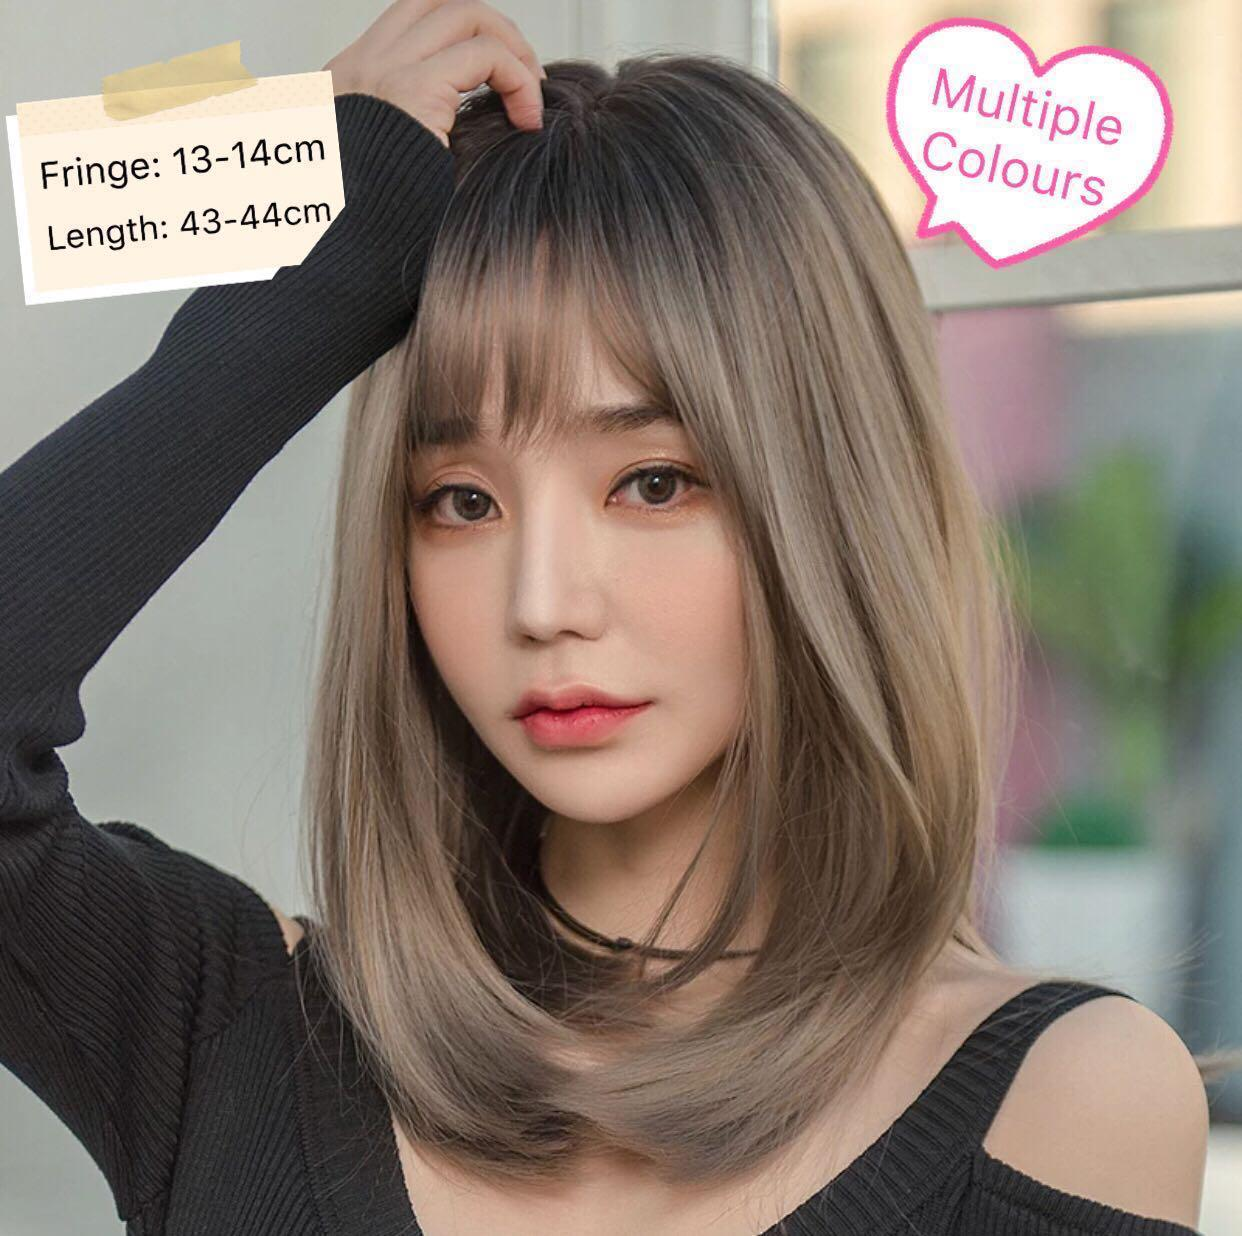 Pre Order Korean Style Shoulder Length Hair Wig Multiple Colours Full Wig Party Cosplay Ombre Women S Fashion Clothes Dresses Skirts On Carousell